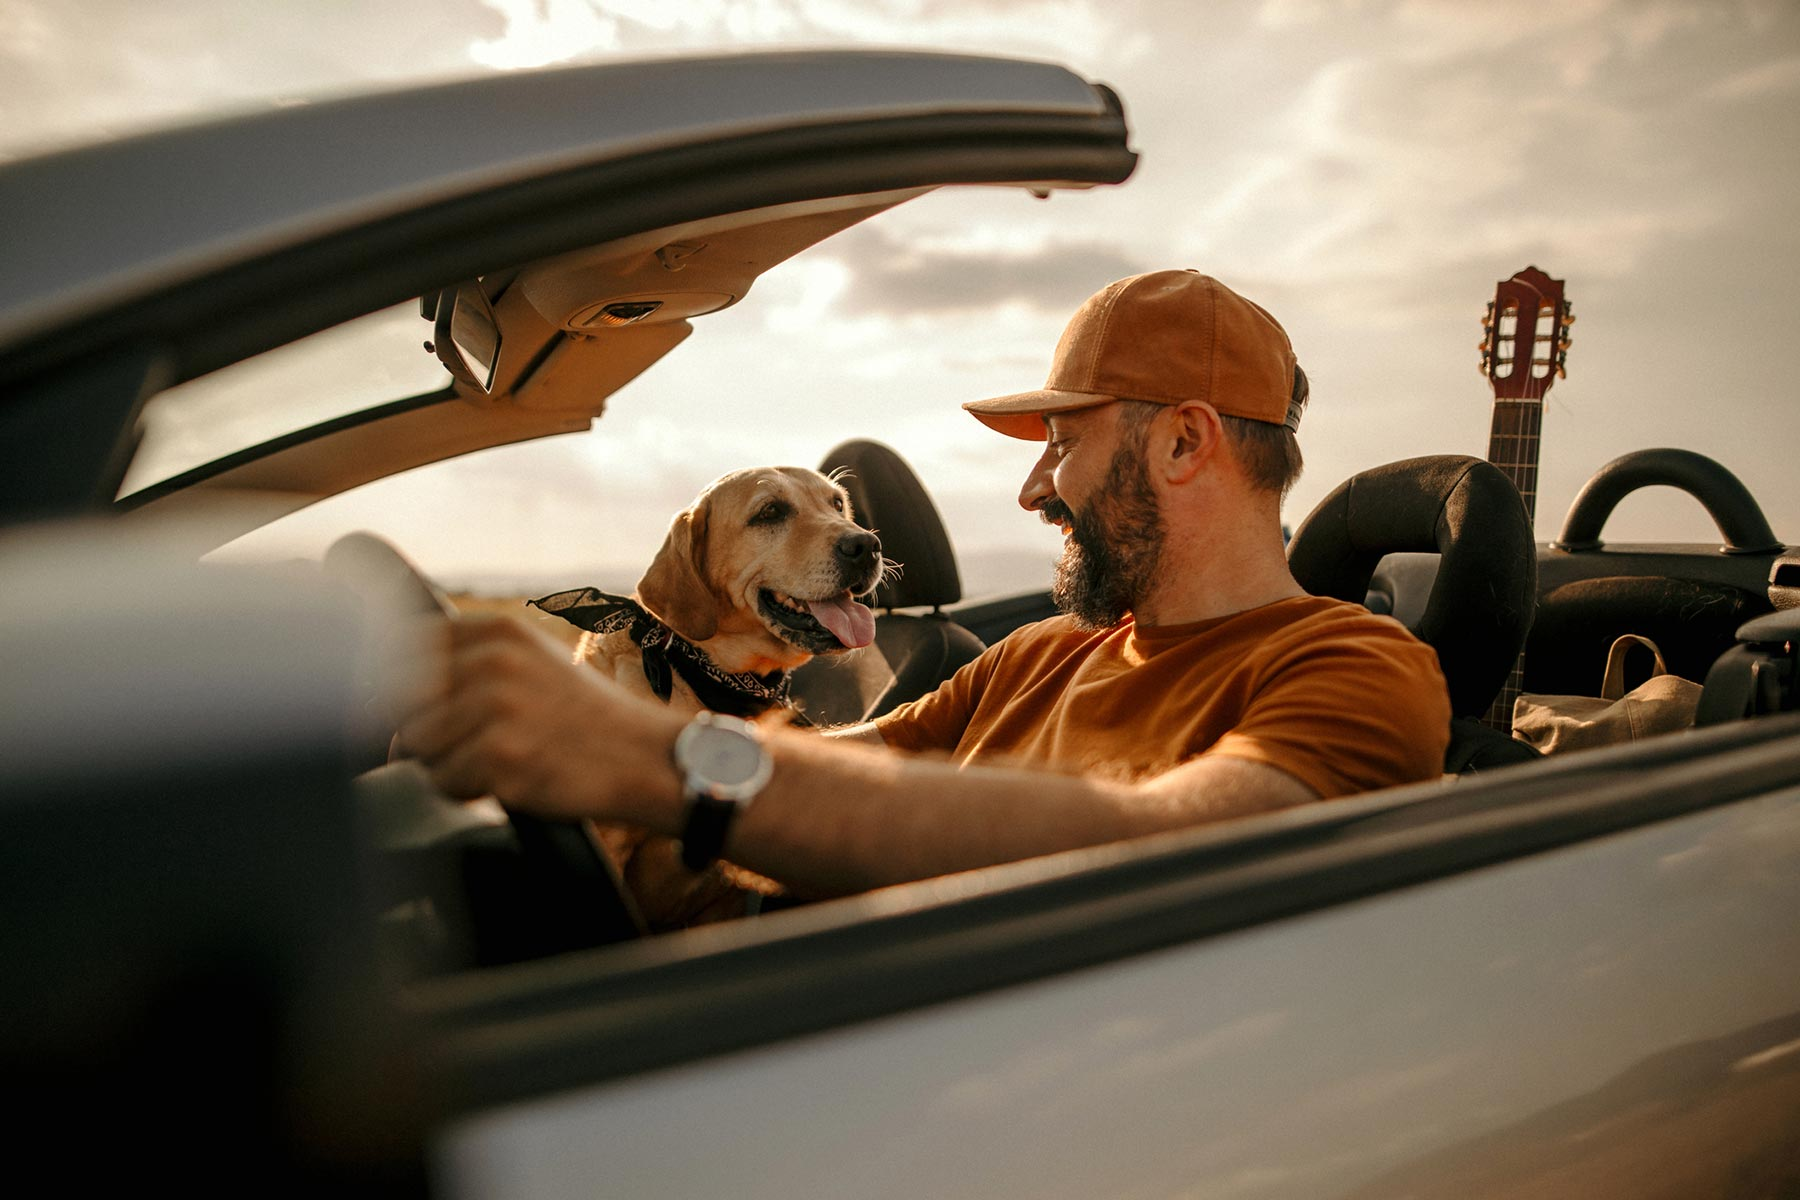 man with guitar and dog in car